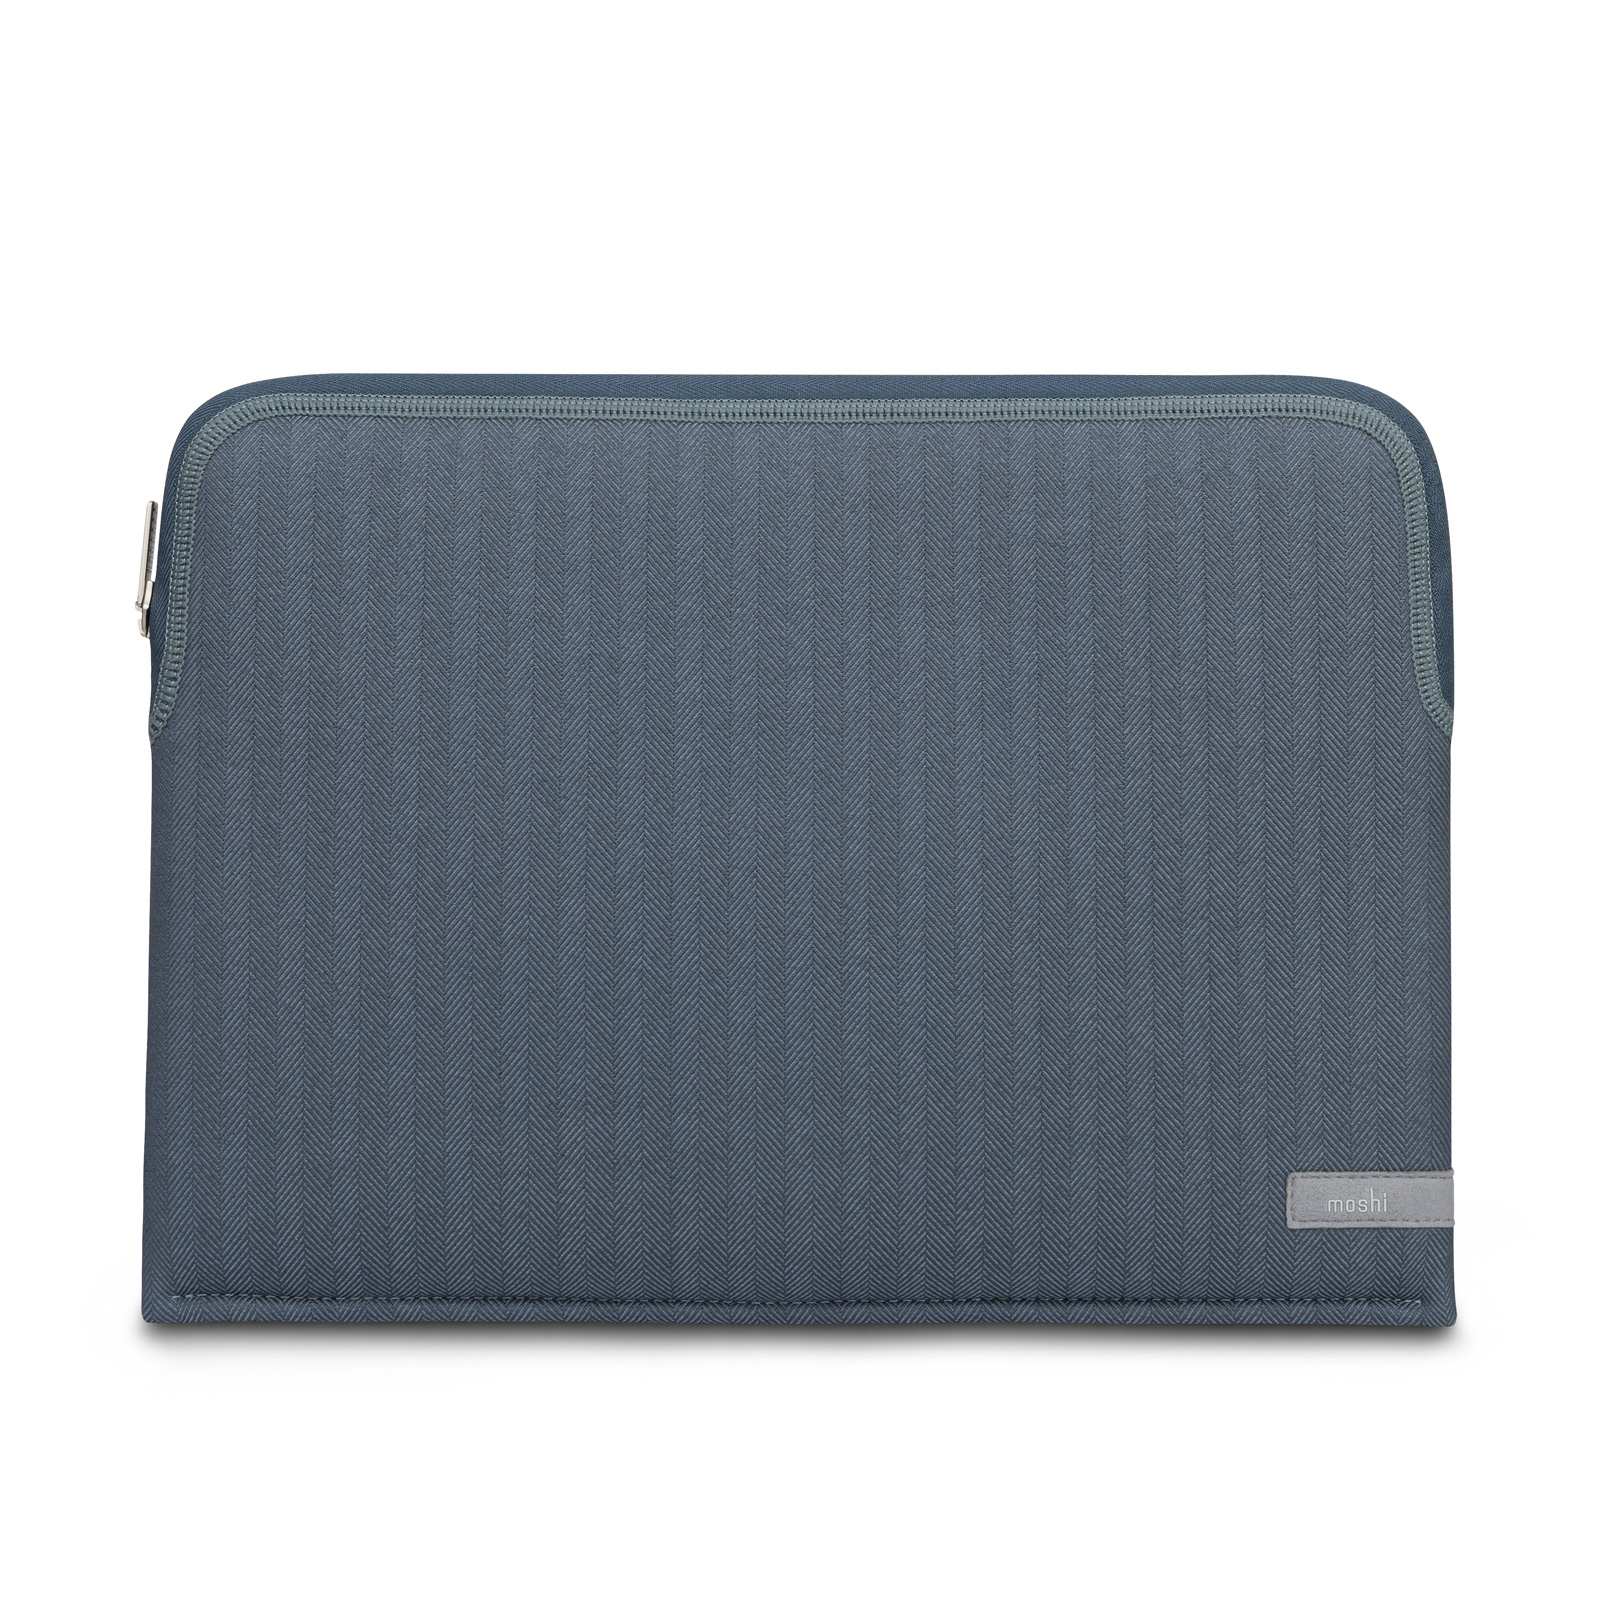 "Pluma 13"" Laptop Sleeve (MFG)-image"